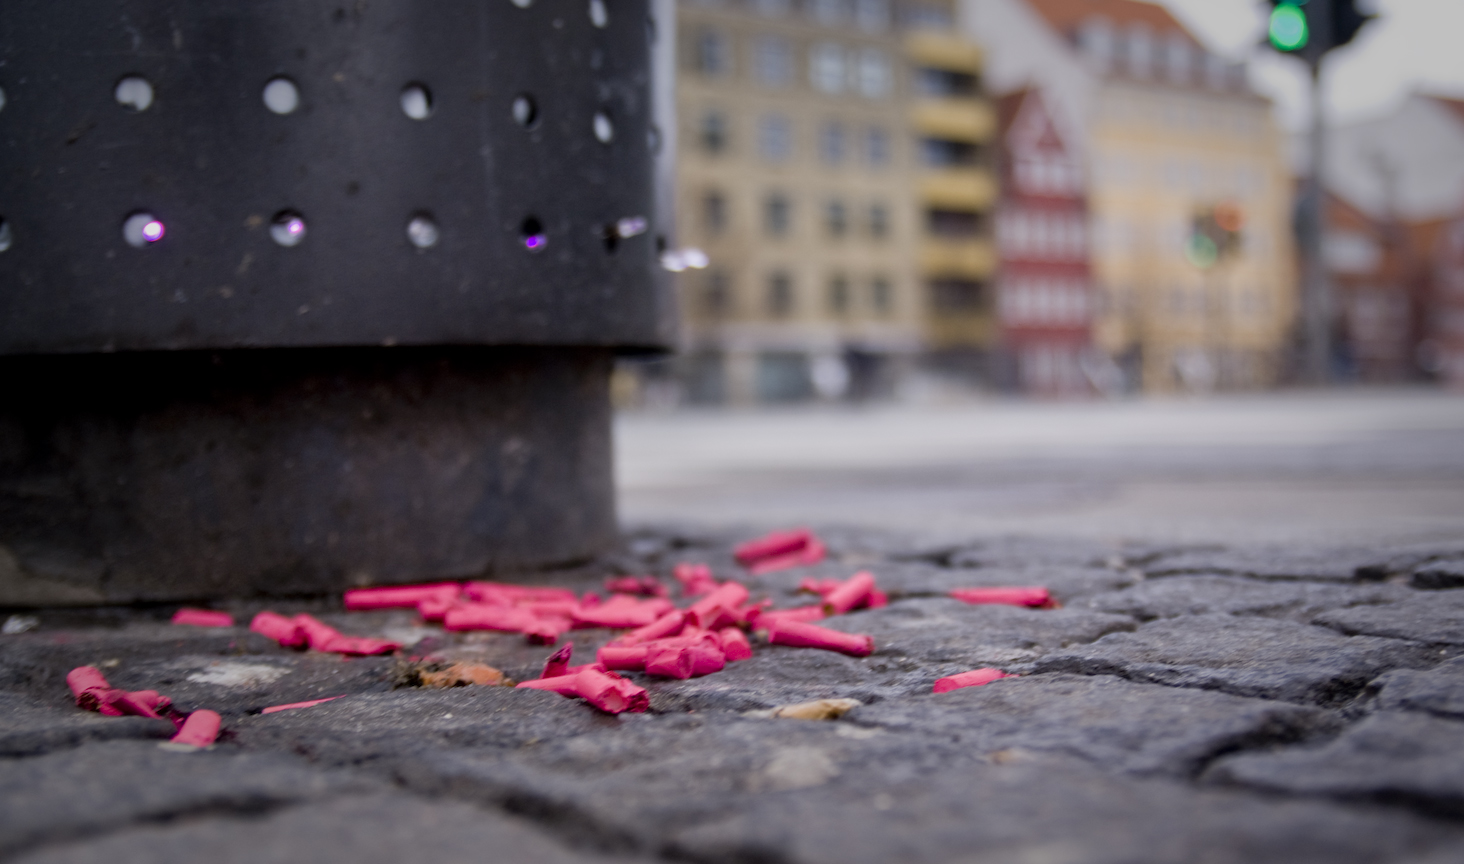 Trash attack Copenhagen pink trash on ground cigerate